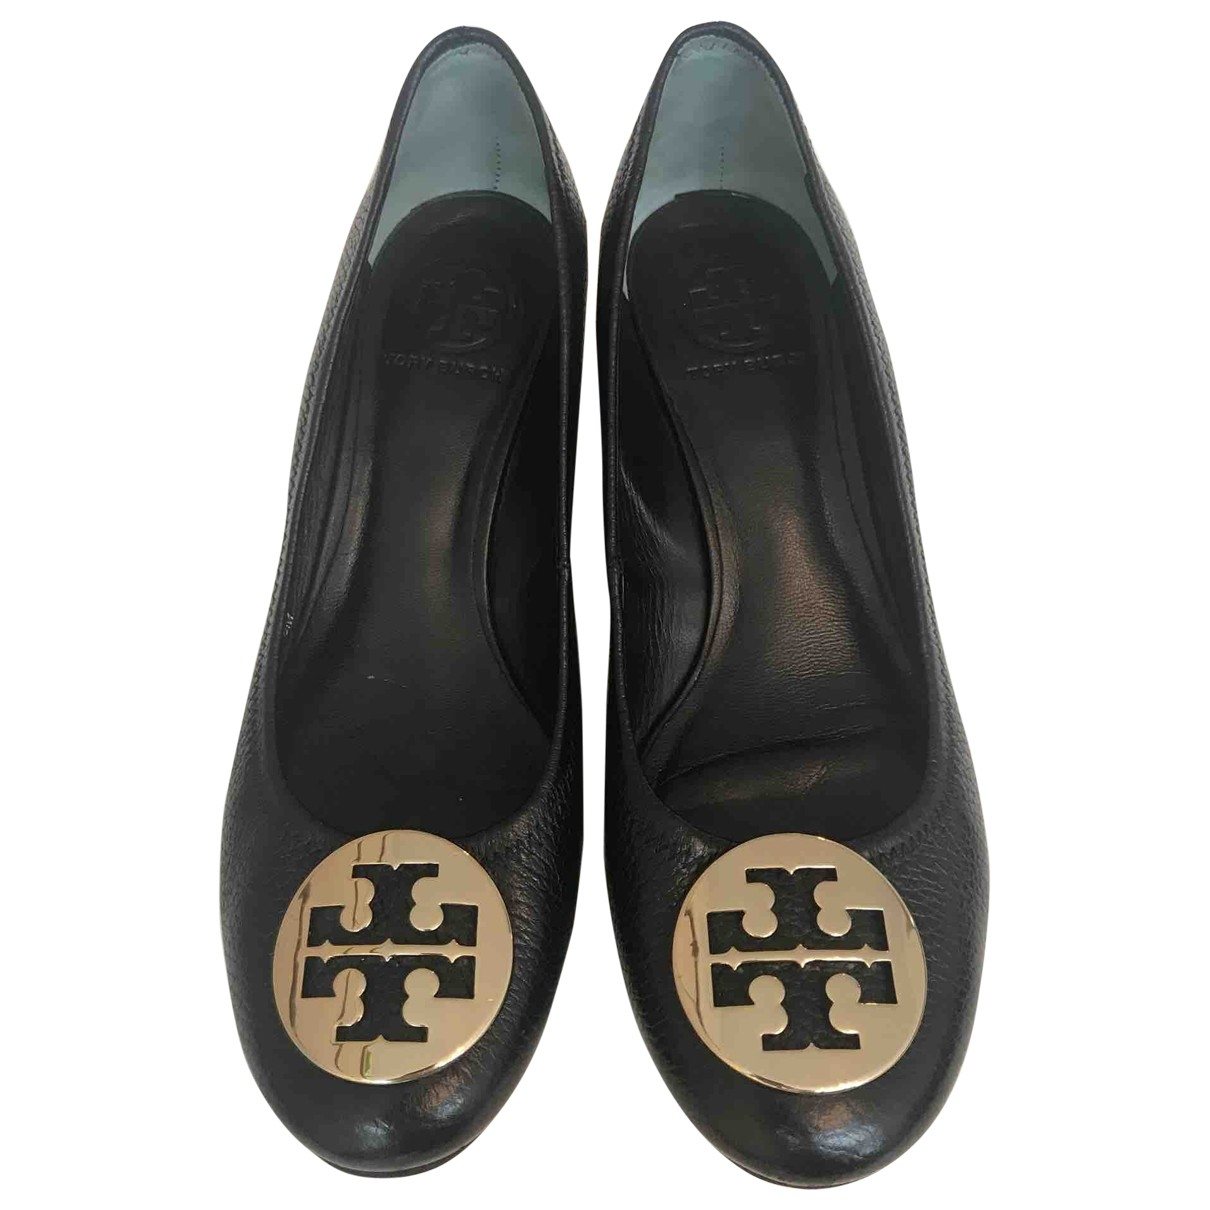 Tory Burch \N Black Leather Heels for Women 8 US